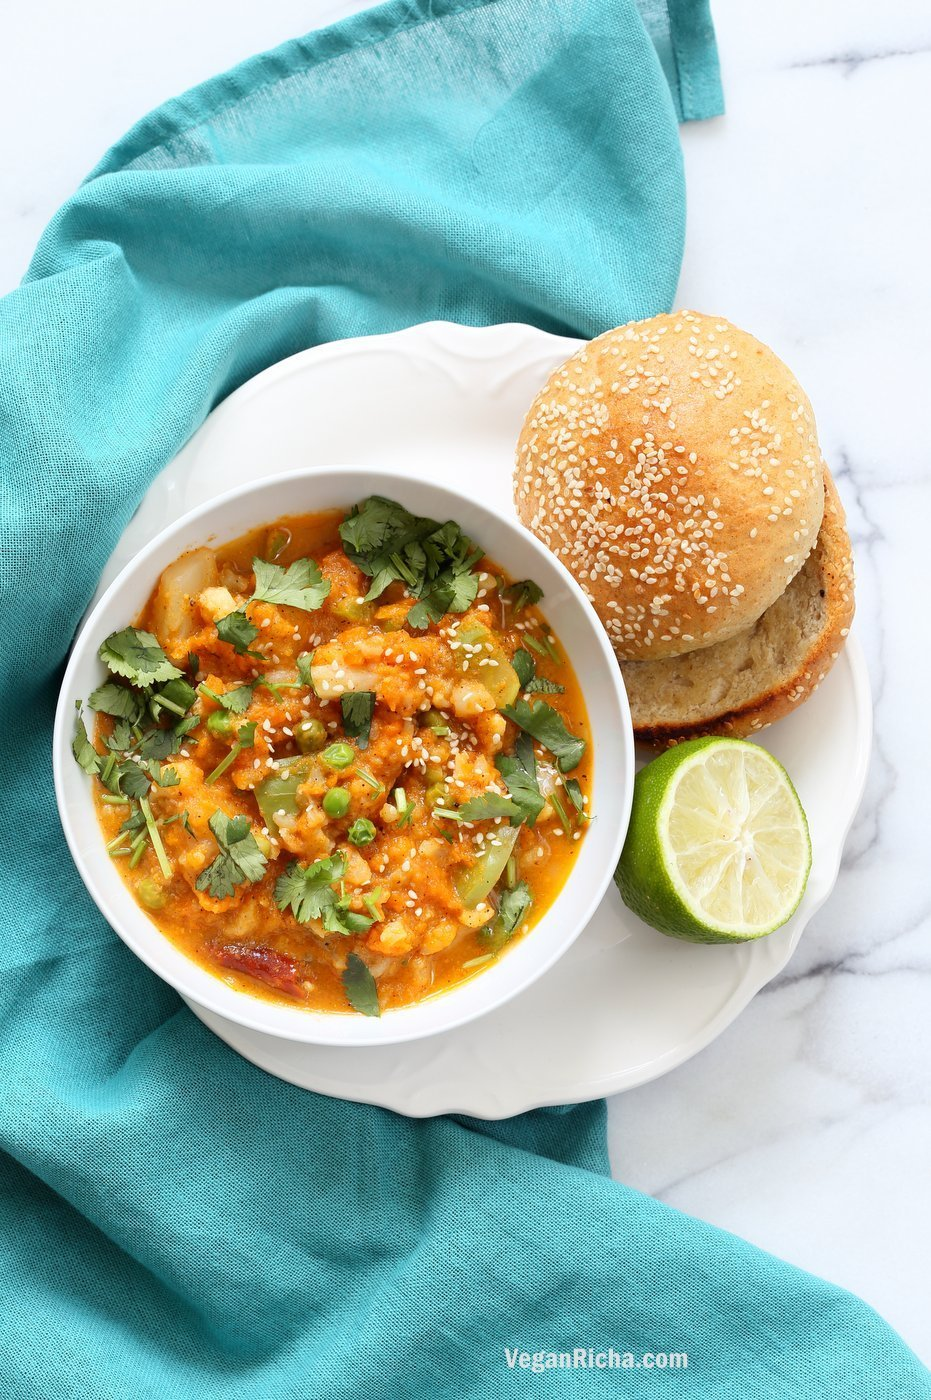 Veg Kolhapuri Recipe - Veggies in Sesame Coconut Tomato Kolhapuri Sauce. Use up the leftover veggies in this flavorful sauce. Anything goes. Add cooked beans for added protein. #Vegan #Glutenfree #Soyfree #Nutfree #veganricha #Recipe. | VeganRicha.com